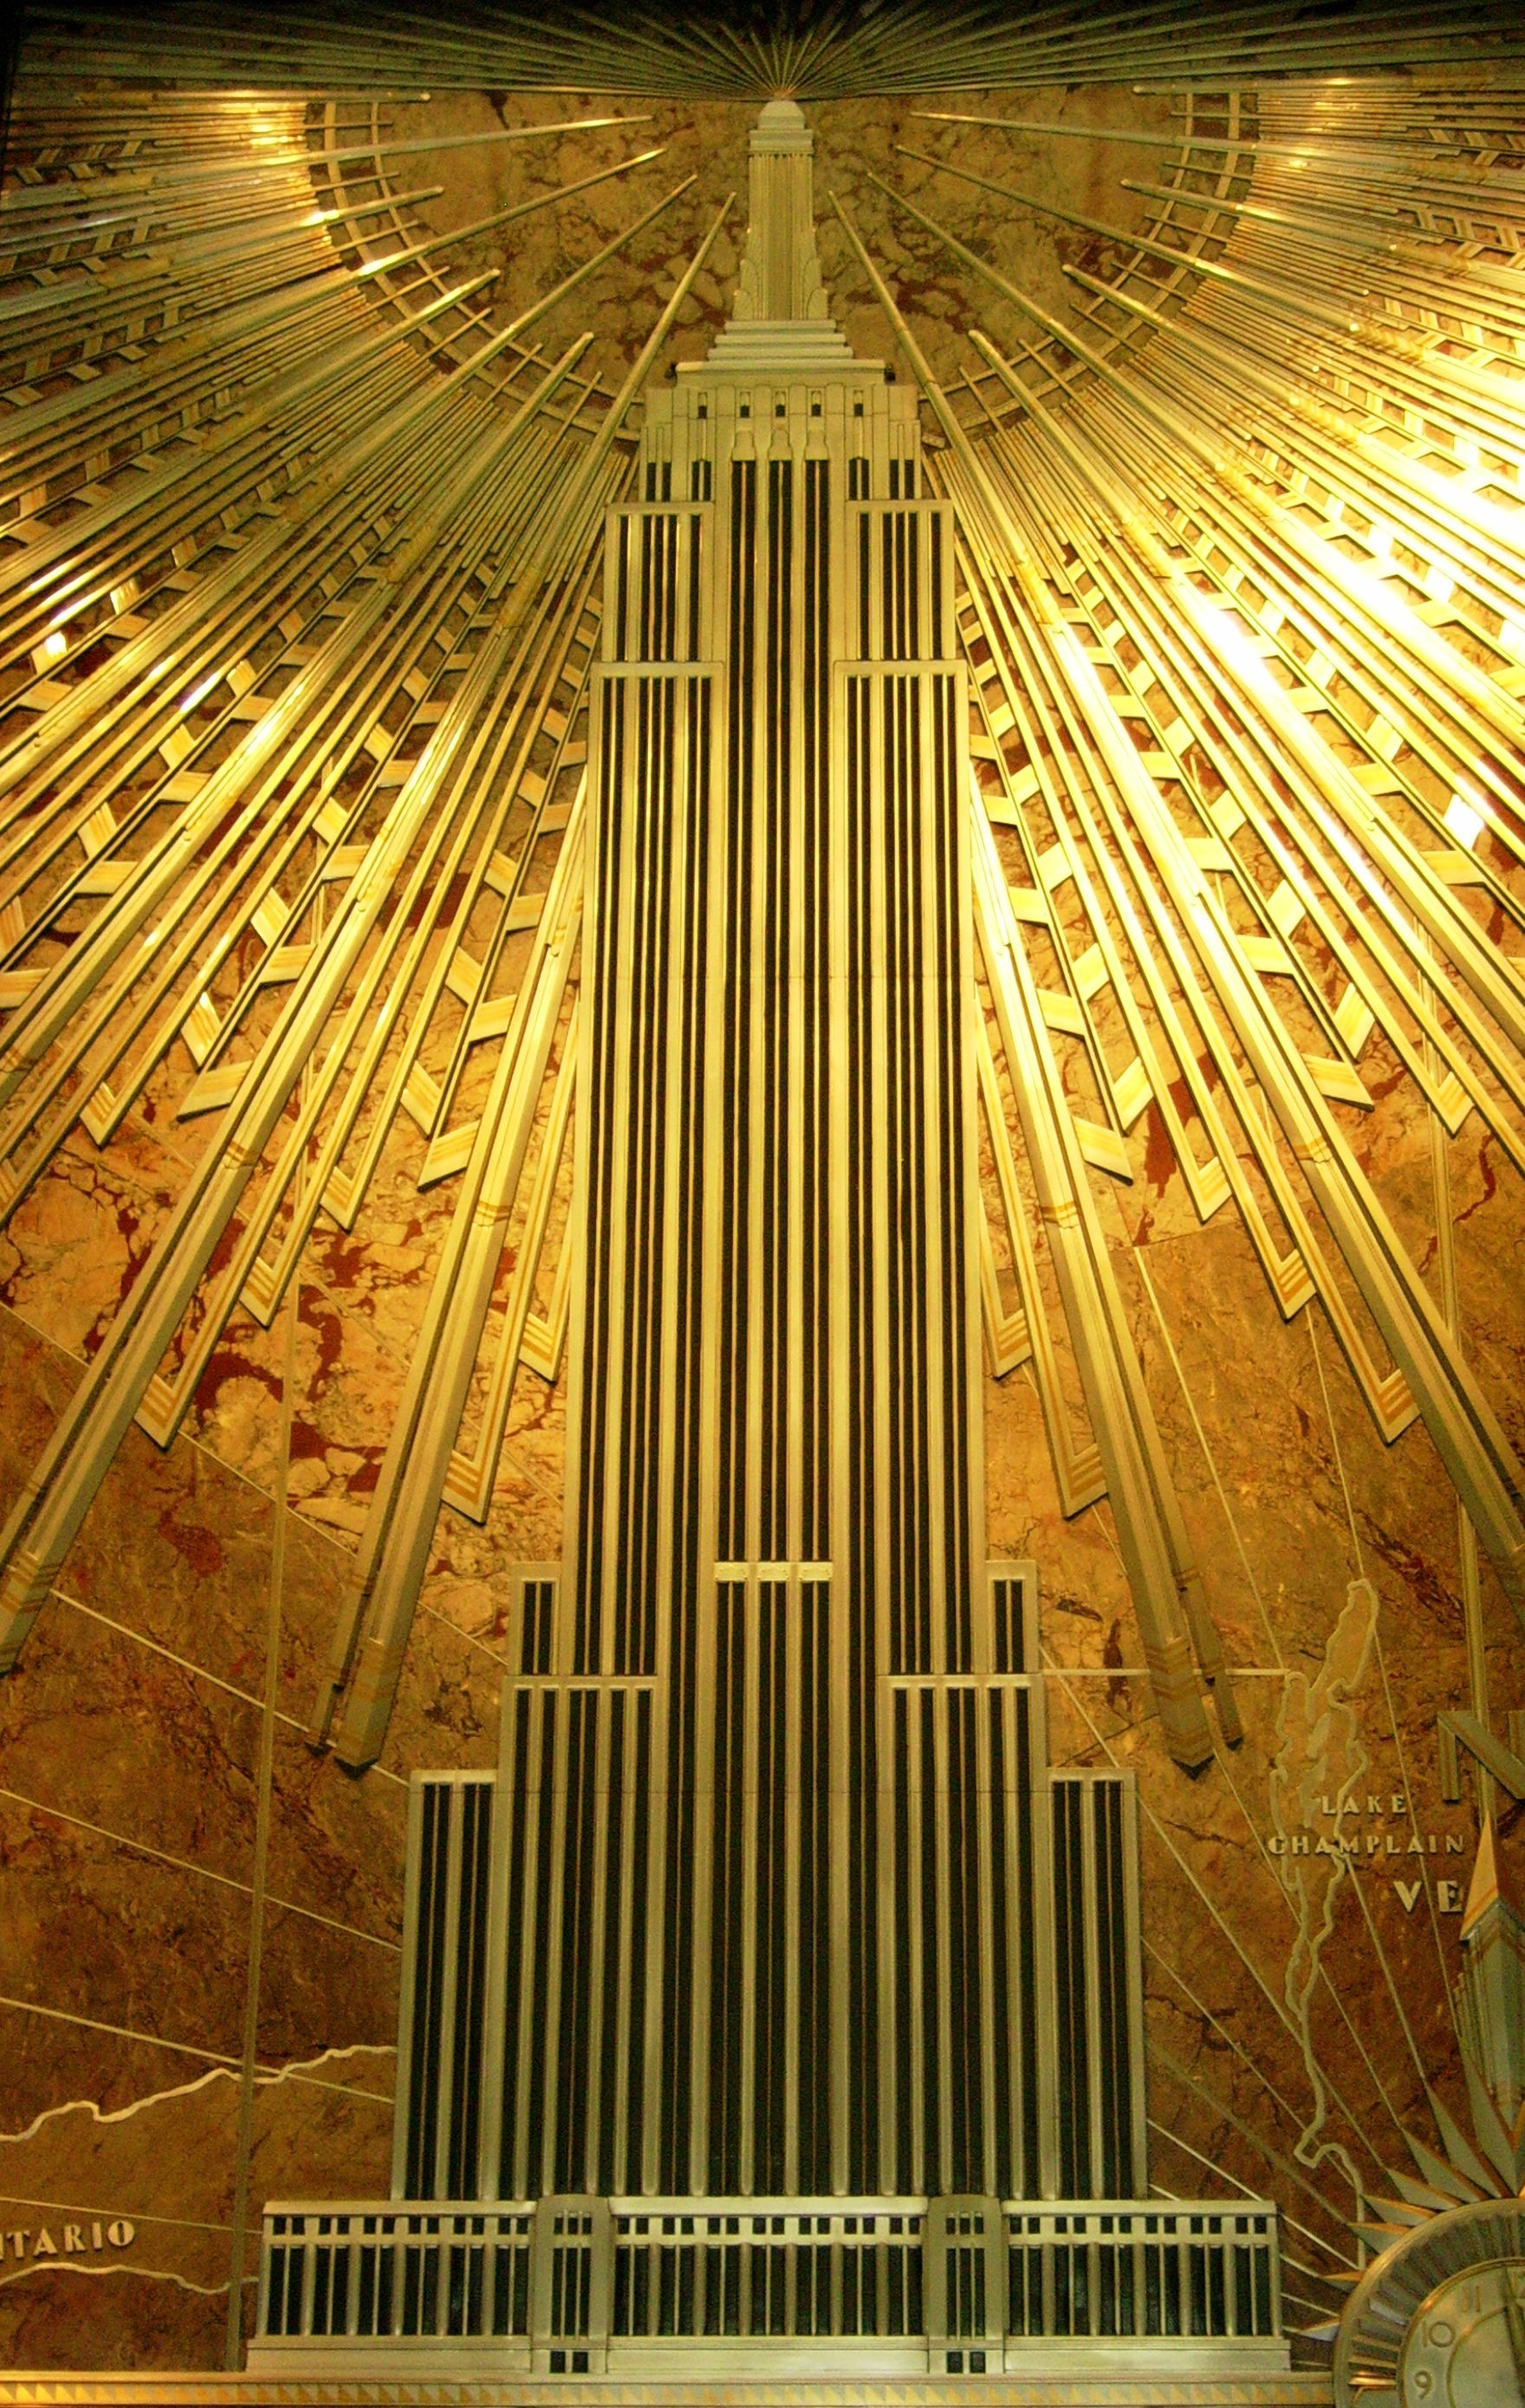 Art Deco Plaque Depicting Empire State Building Empire State